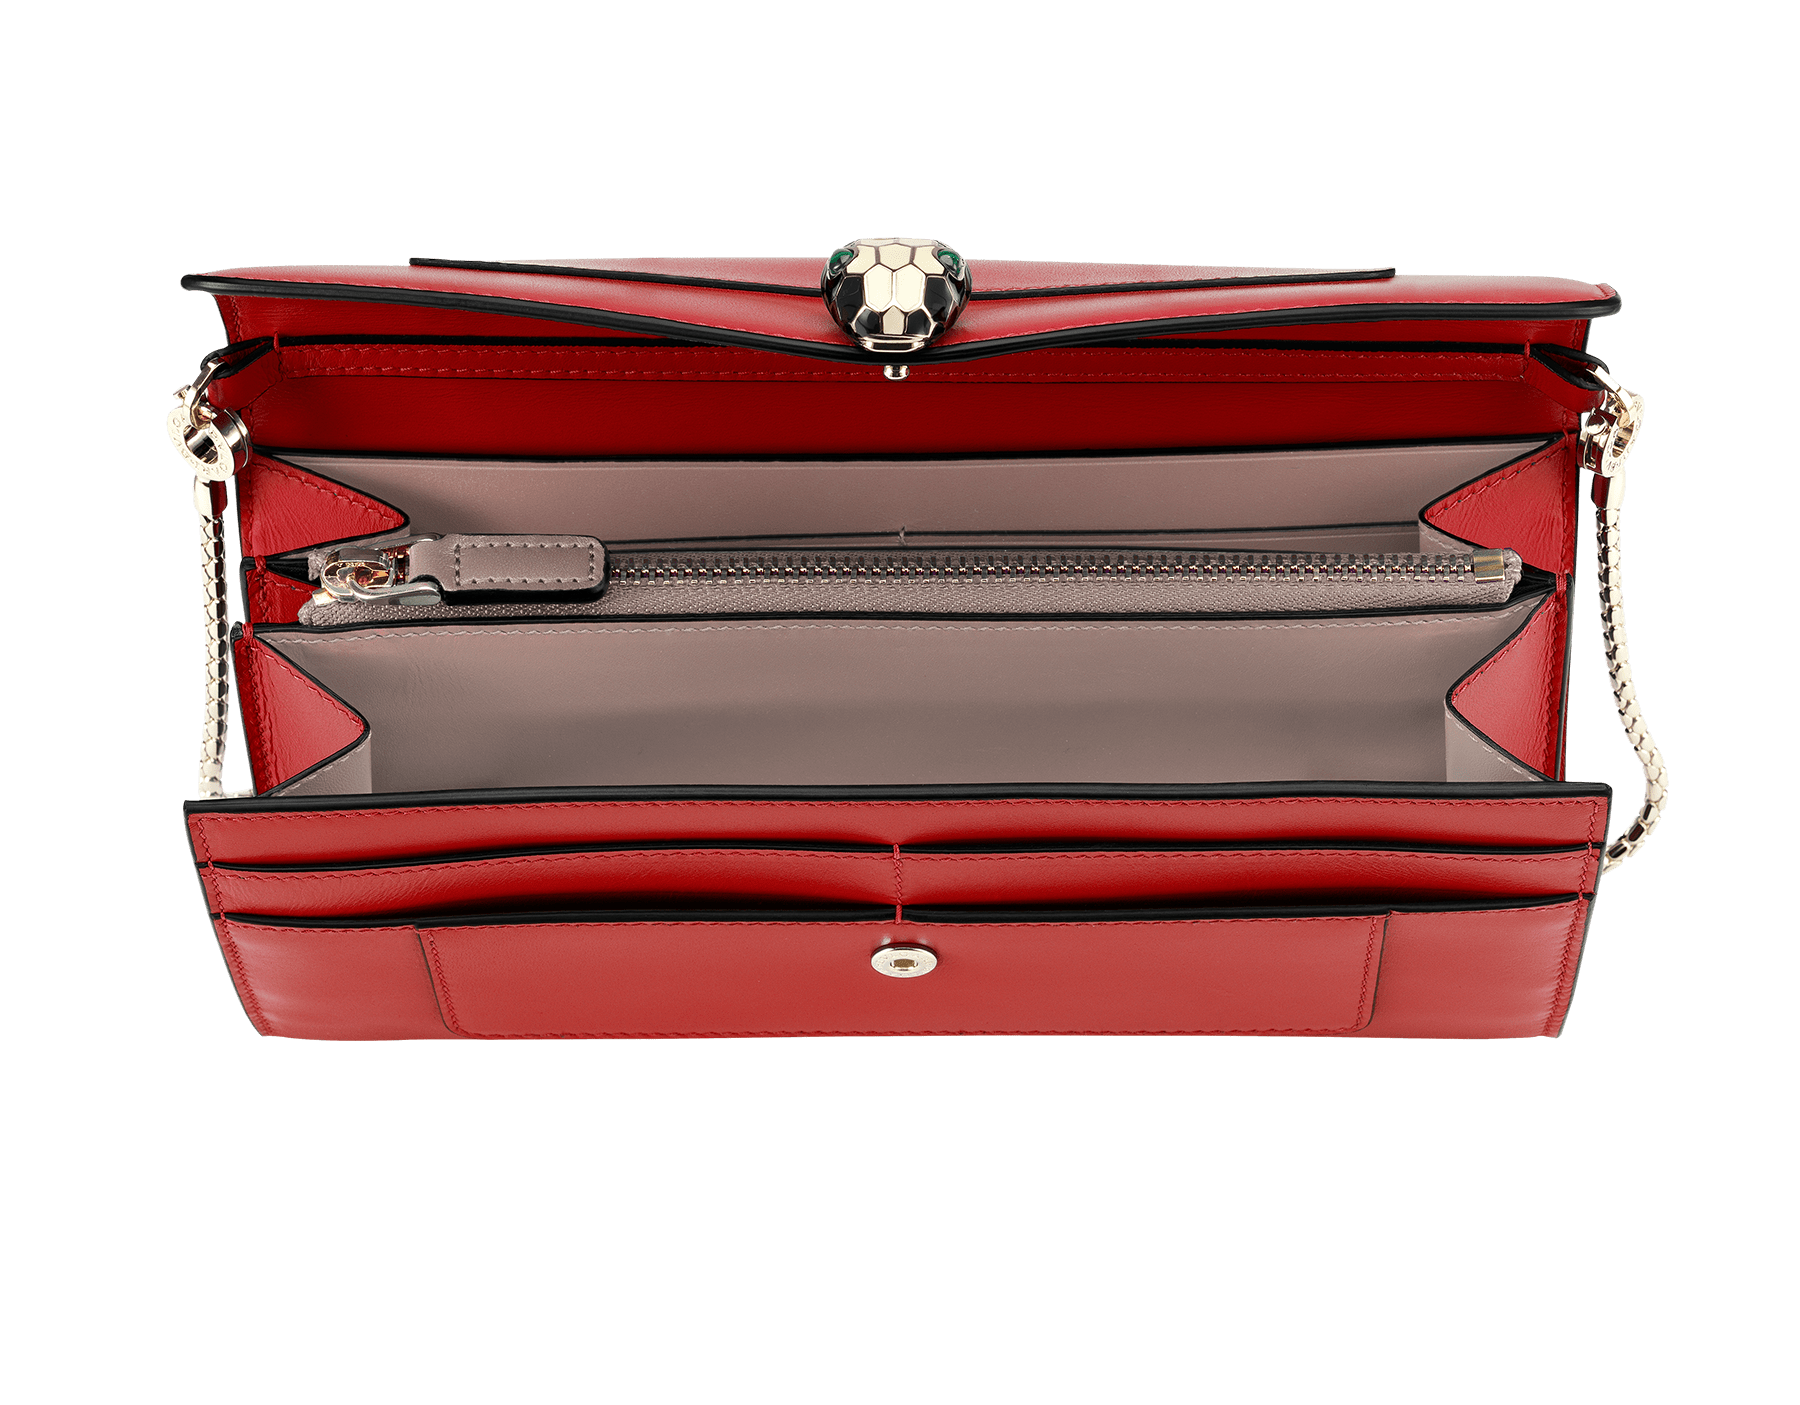 Wallet pouch in ruby red and desert quartz calf leather, with fuxia nappa lining. Brass light gold plated Serpenti head stud closure in black and white enamel with malachite eyes. 281315 image 2